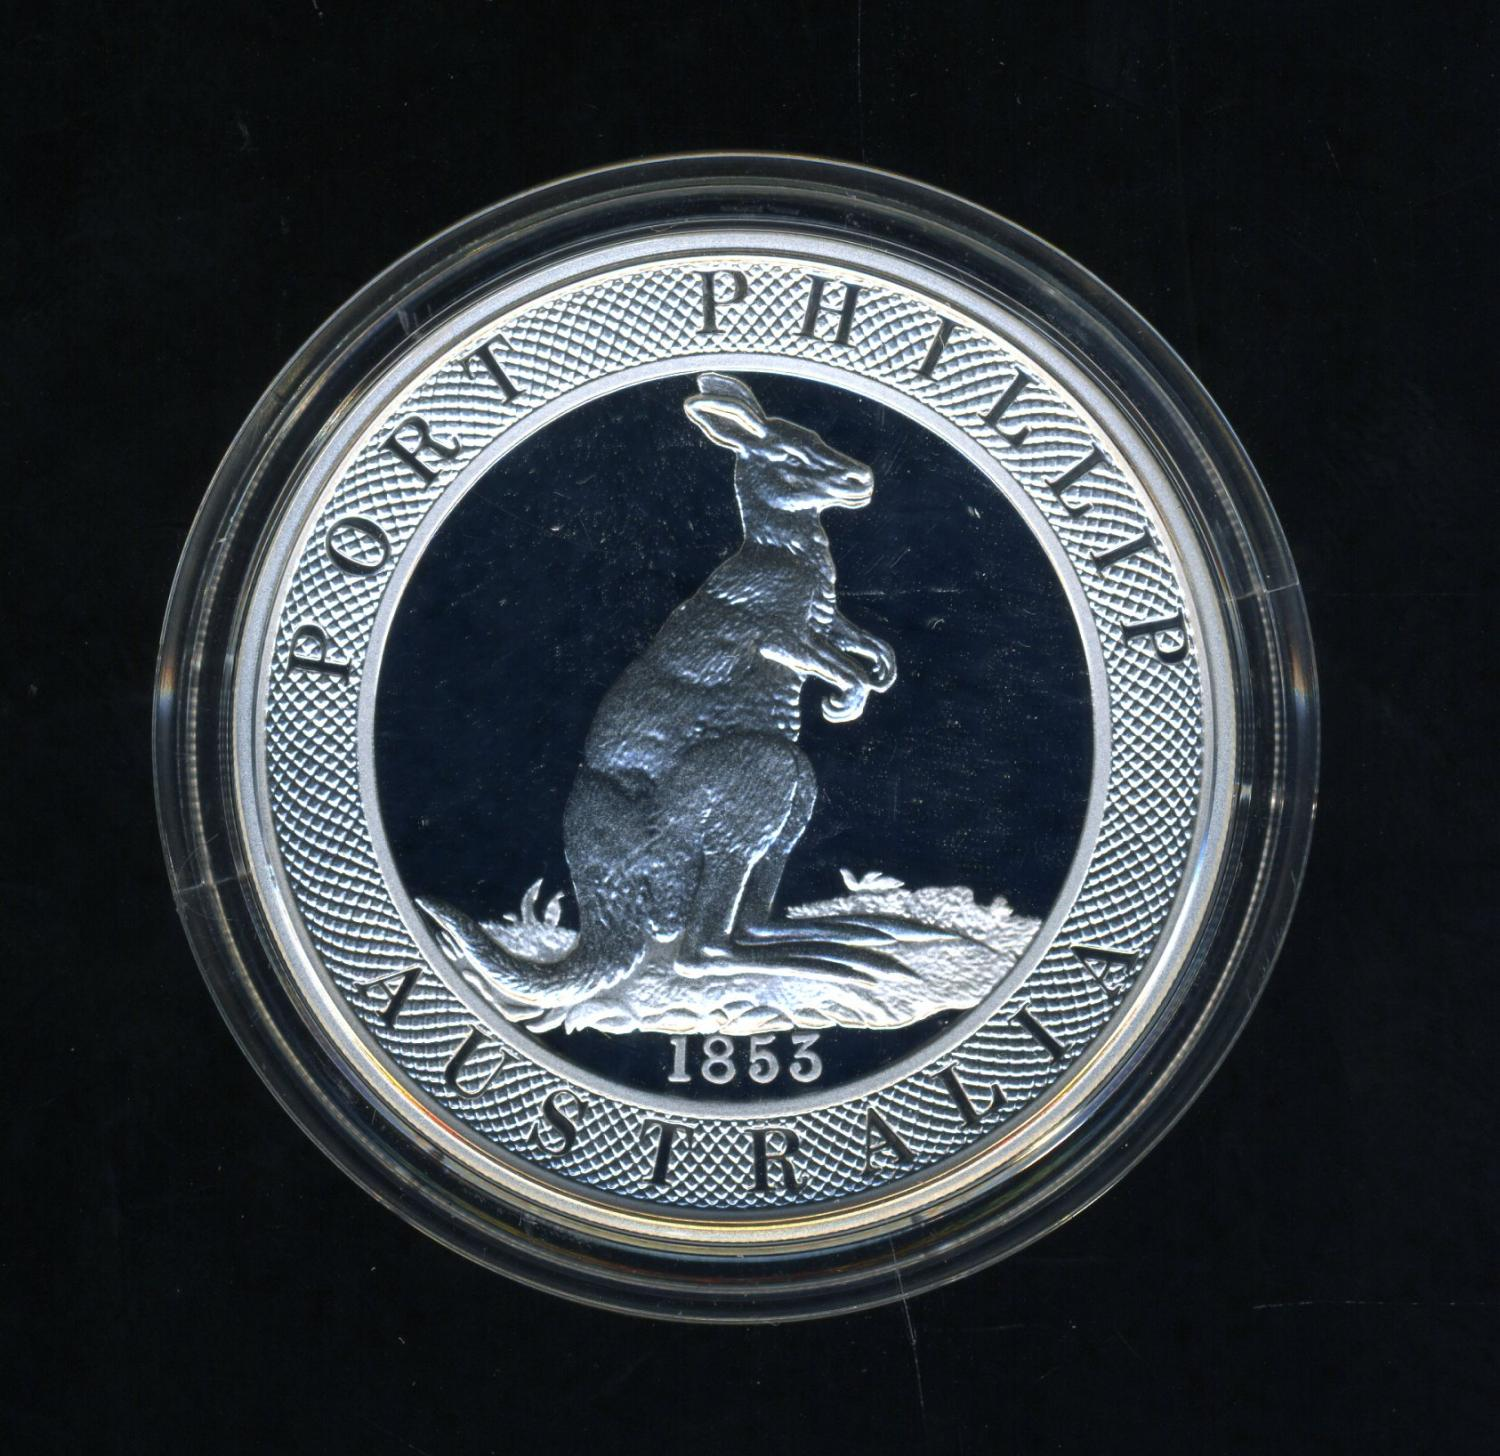 Thumbnail for 2003 Australian $10 Silver Coin from Masterpieces in Silver Set .999 Silver - Port Phillip Patterns.